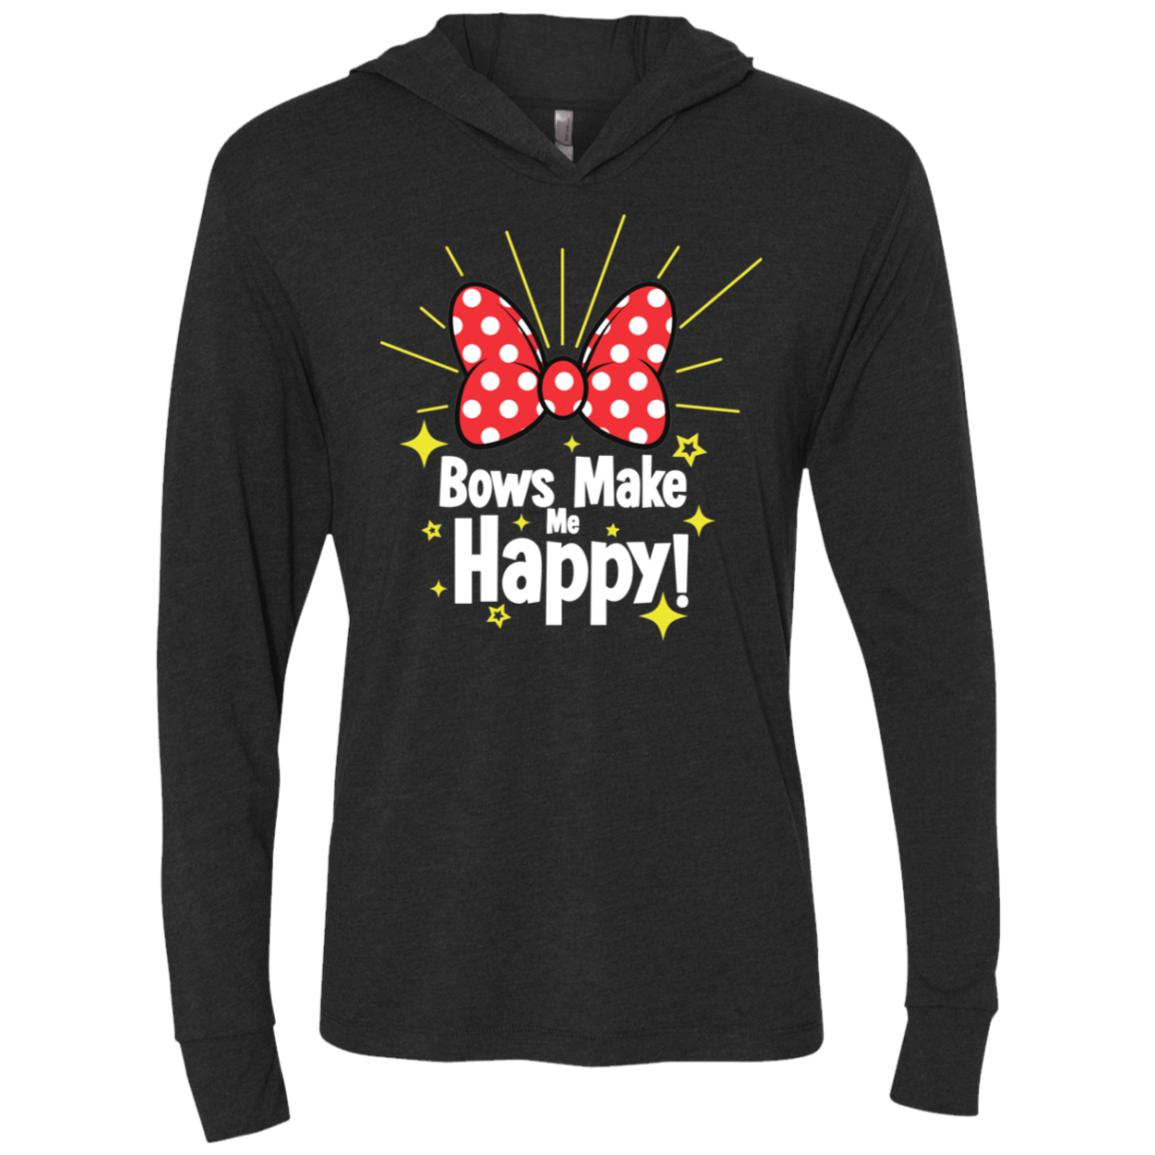 Bows Make Me Happy - Next Level Unisex Triblend LS Hooded T-Shirt